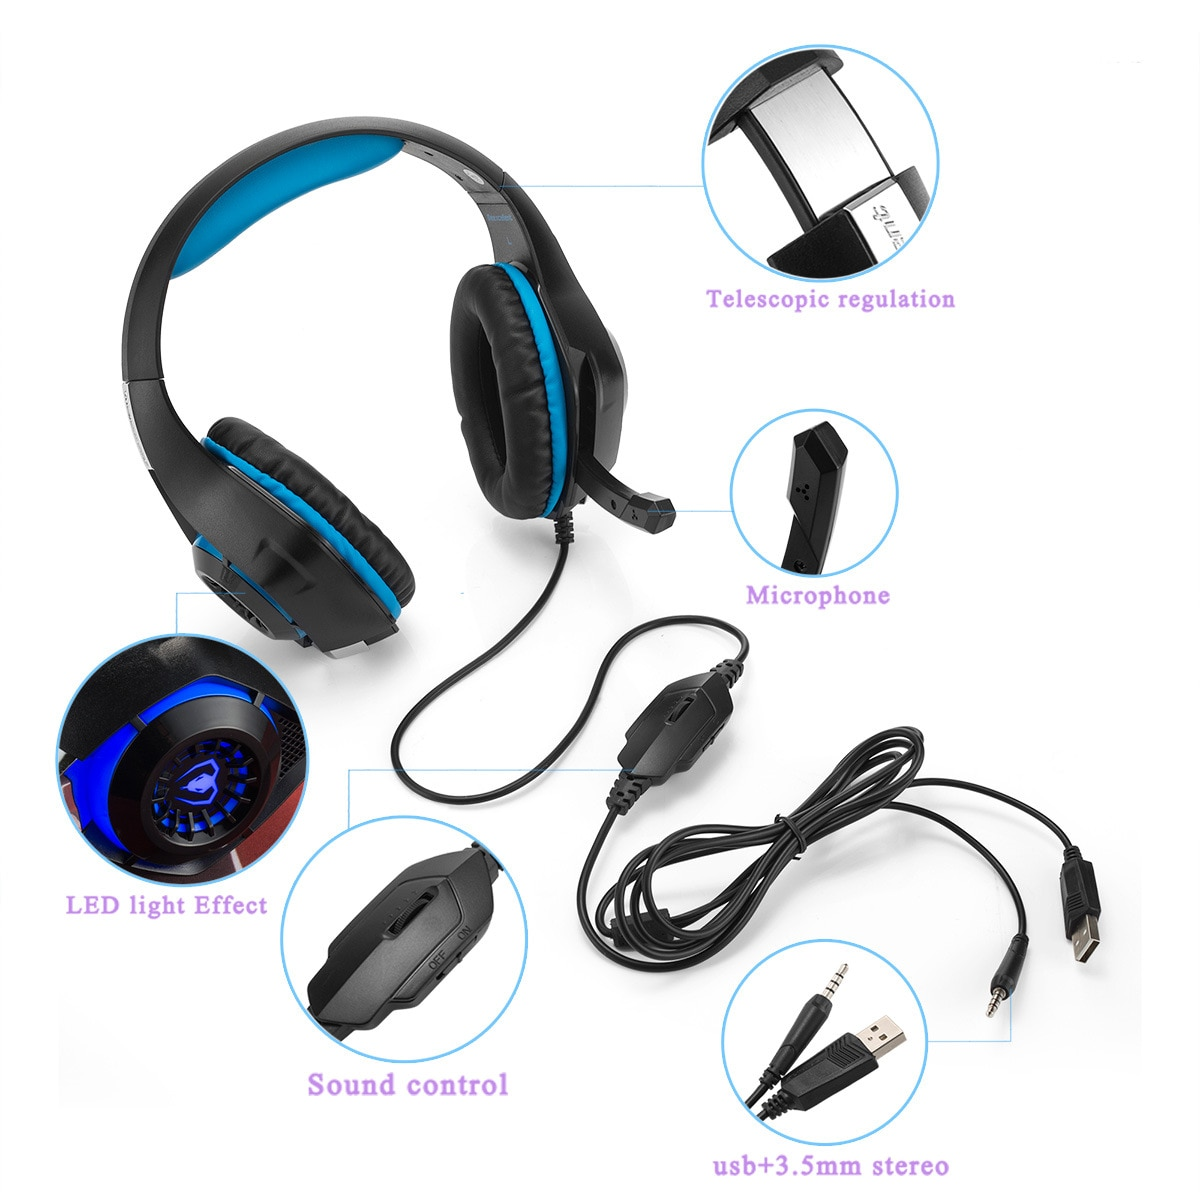 GM-1 Stereo PS4 Gaming Headphones Deep Bass Headsets +Gaming Mice with Microphone LED Light for Phone PC Gamer XOBOX One